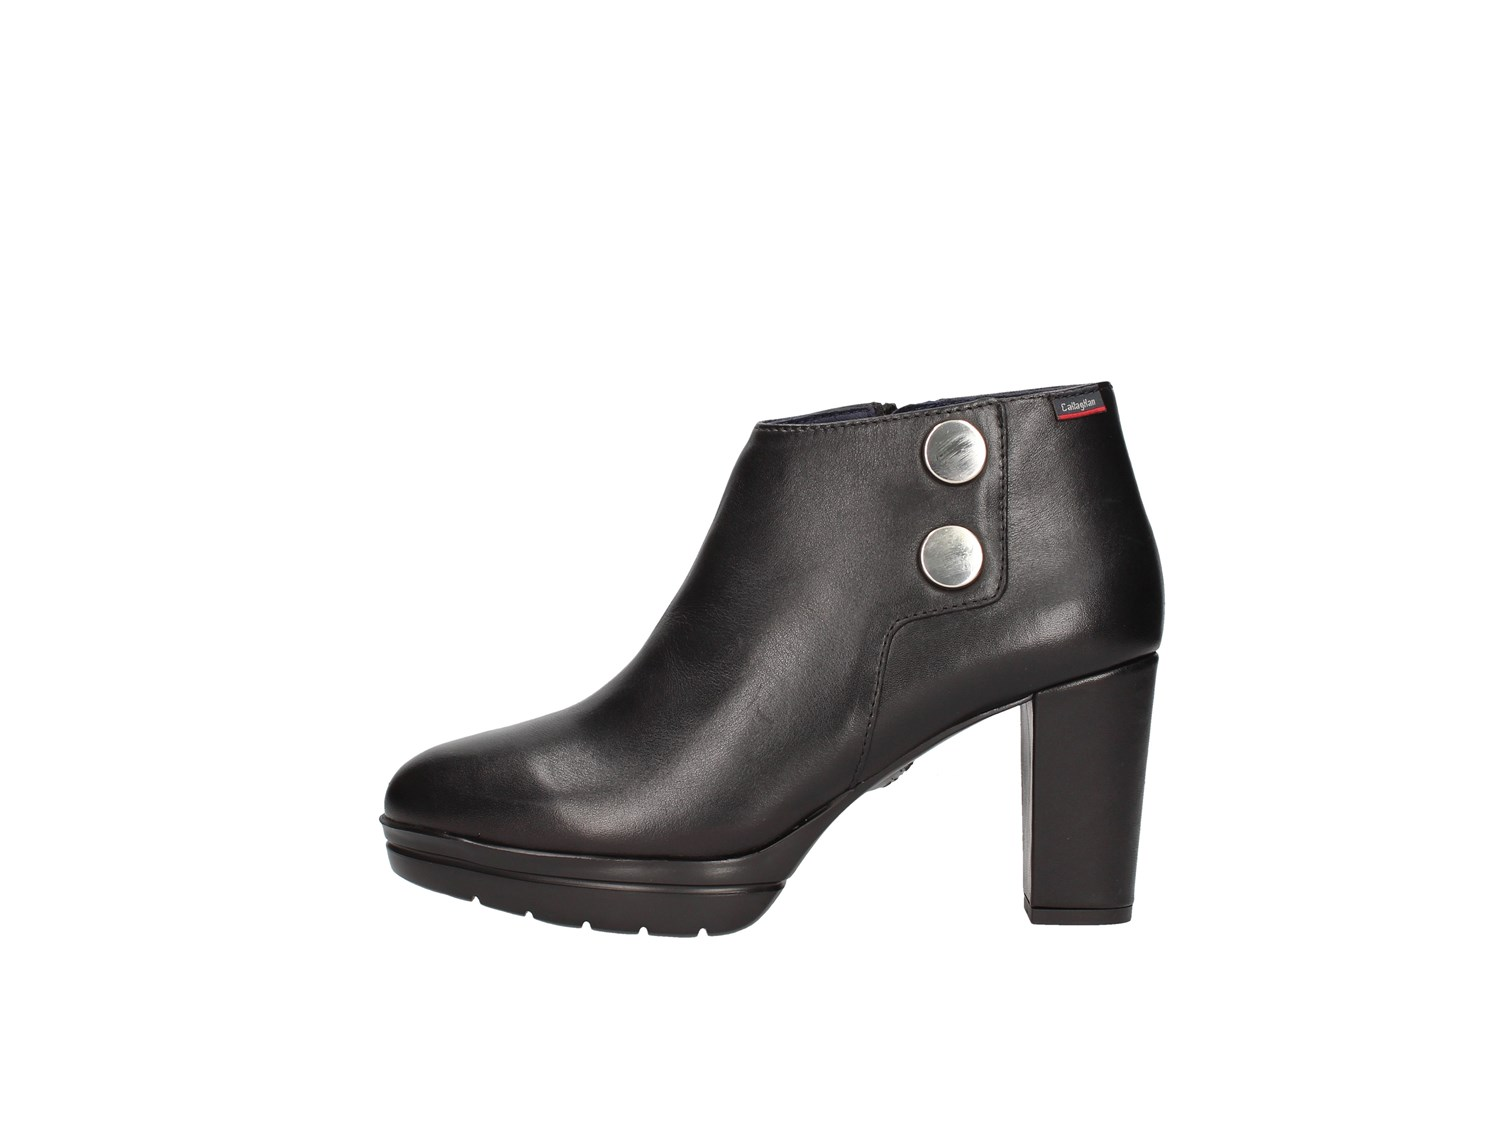 Callaghan 23703 Black Shoes Women Tronchetto